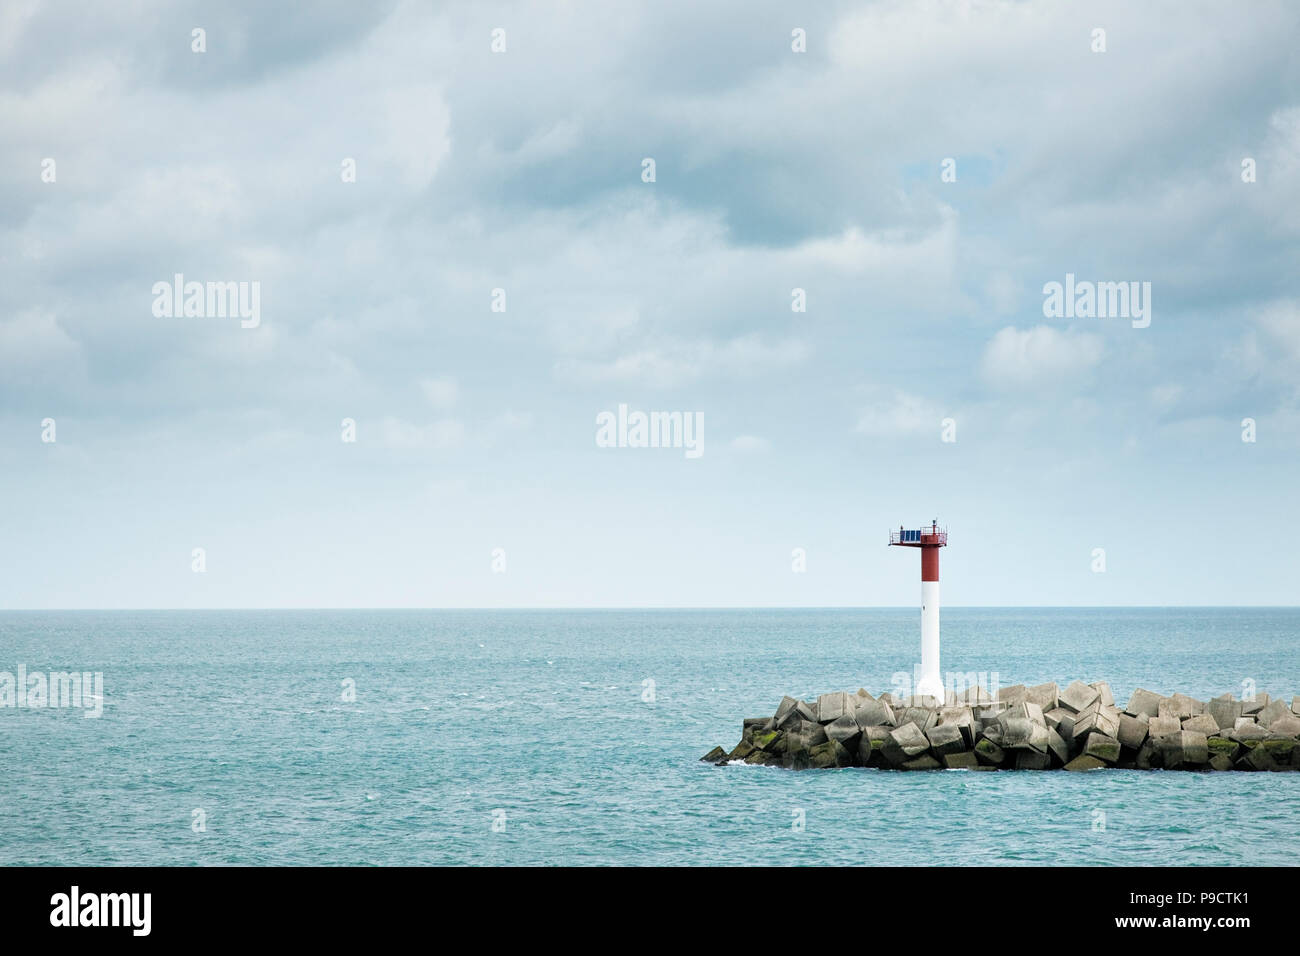 Solar powered Navigation beacon and man made harbour wall, Dunkirk, France, Europe - Stock Image